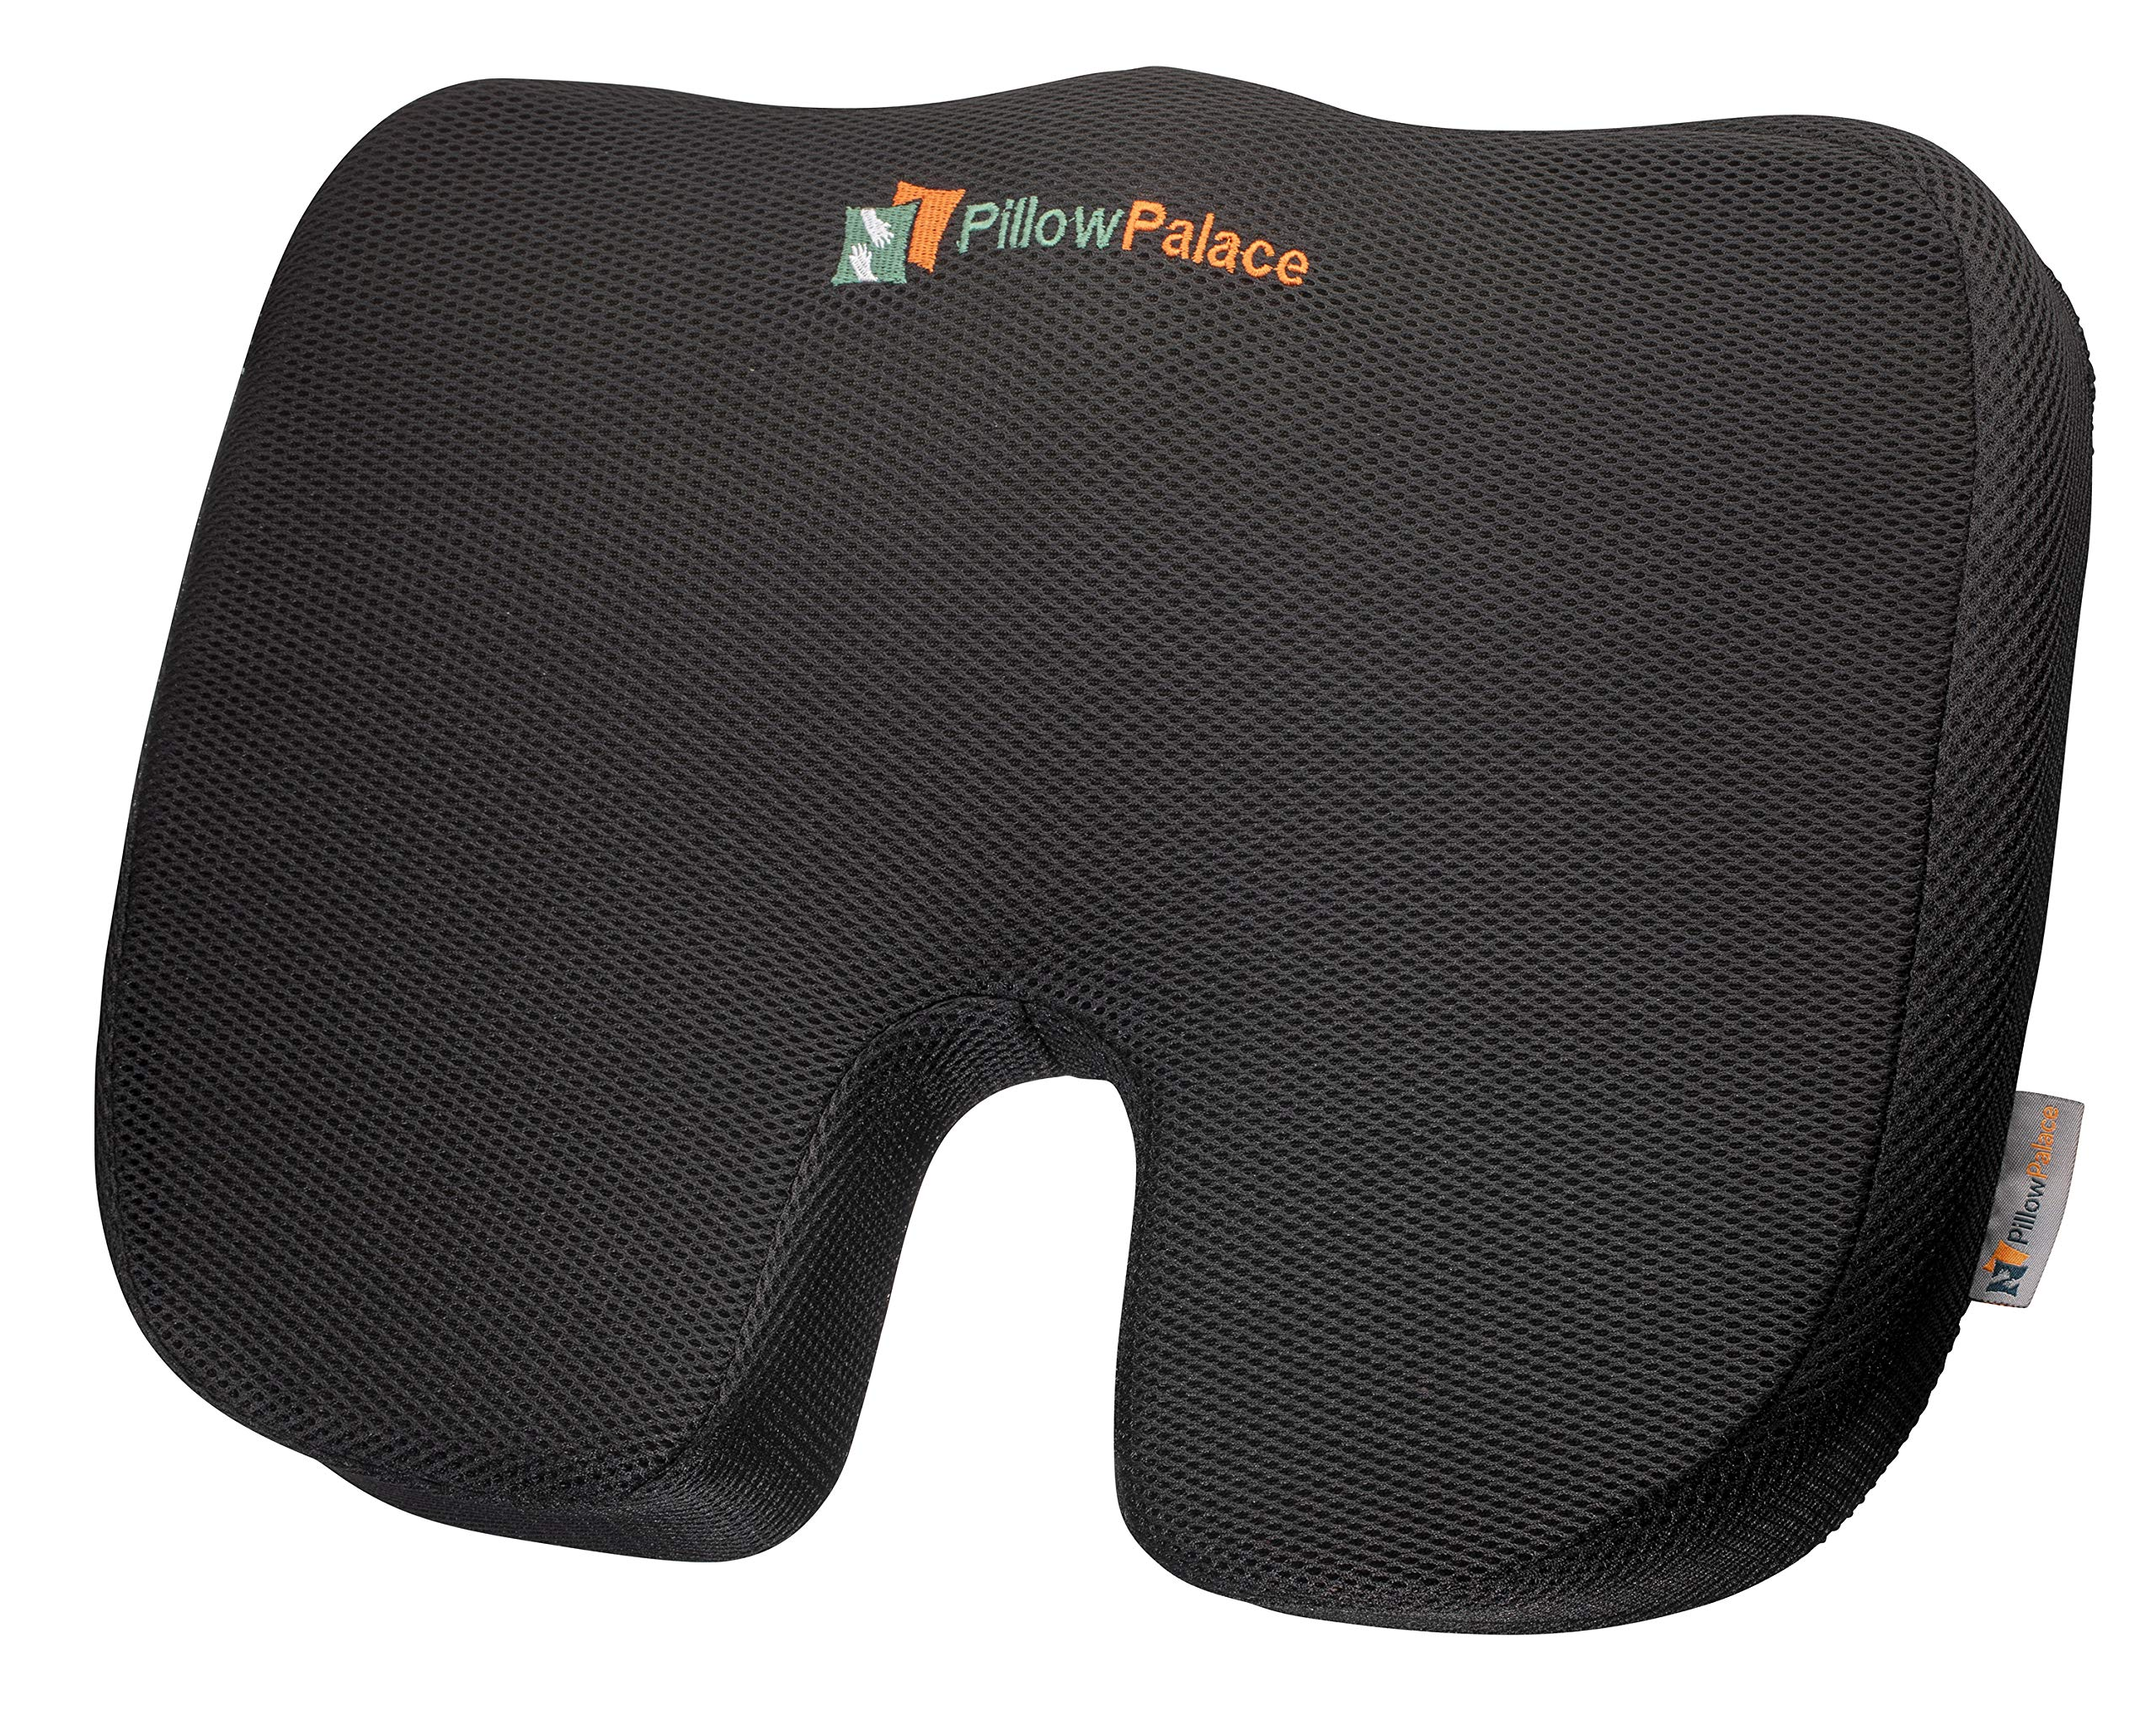 pillow palace | Coccyx Orthopedic Seat Cushion | Memory Foam Chair Pillow | Relieves Back, Tailbone, Sciatica Nerve Pain | Premium Comfort For Home, Office, Car or Event Seating